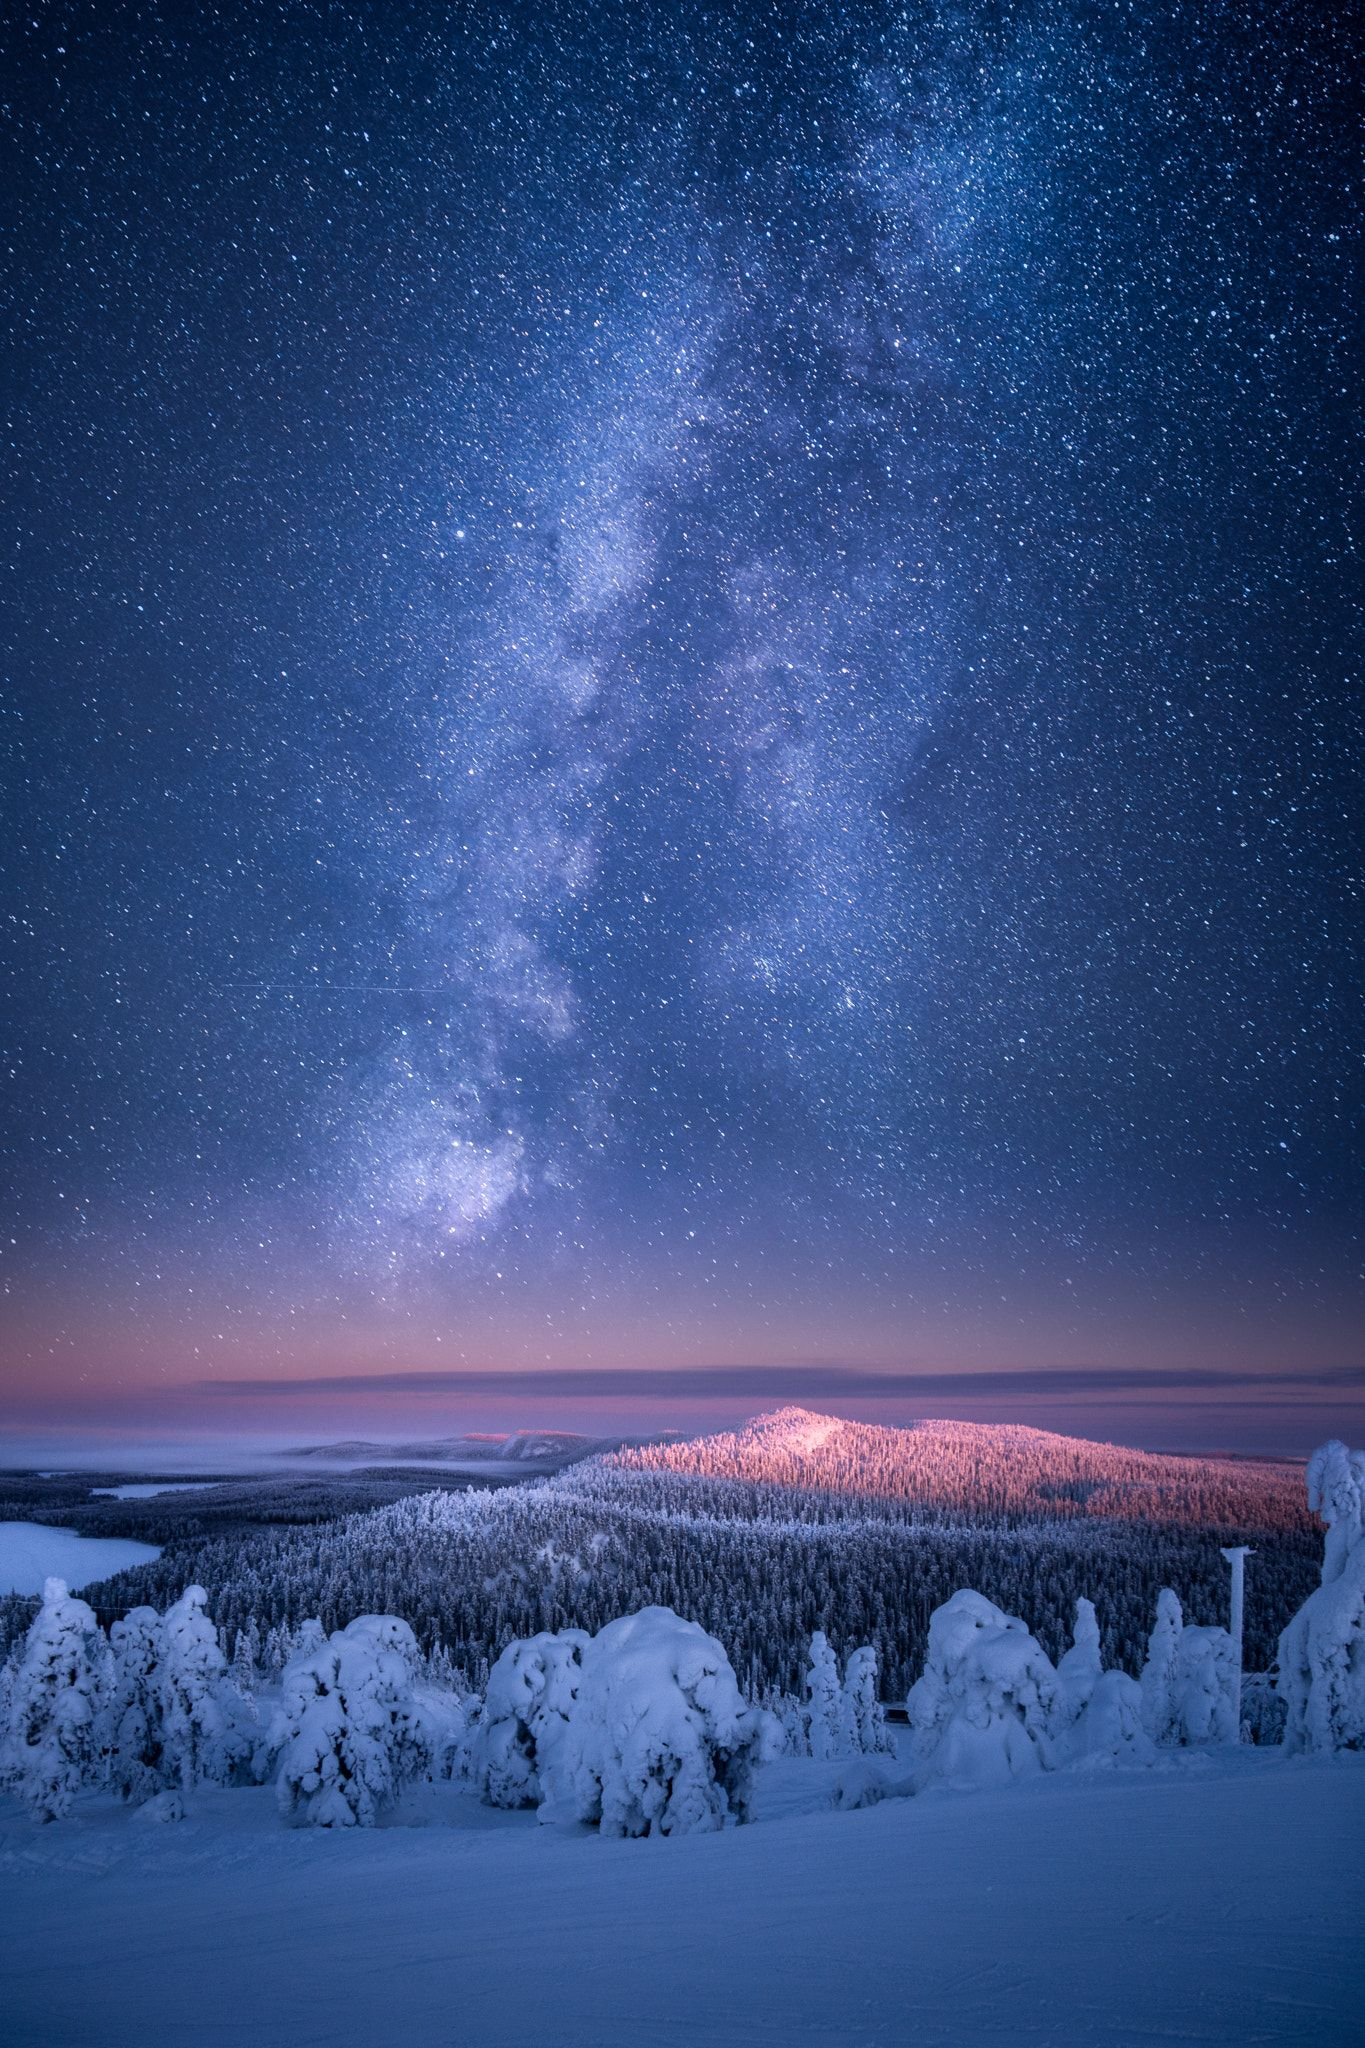 Keeping on Dreaming - This beautiful landscape was shot couple of winters back at Ruka Ski Resort in Kuusamo, Finland. I've added in post processing one of my newest milky way shots which are pretty good quality this time. I'm quite happy with the result. I hope you like it!! =D